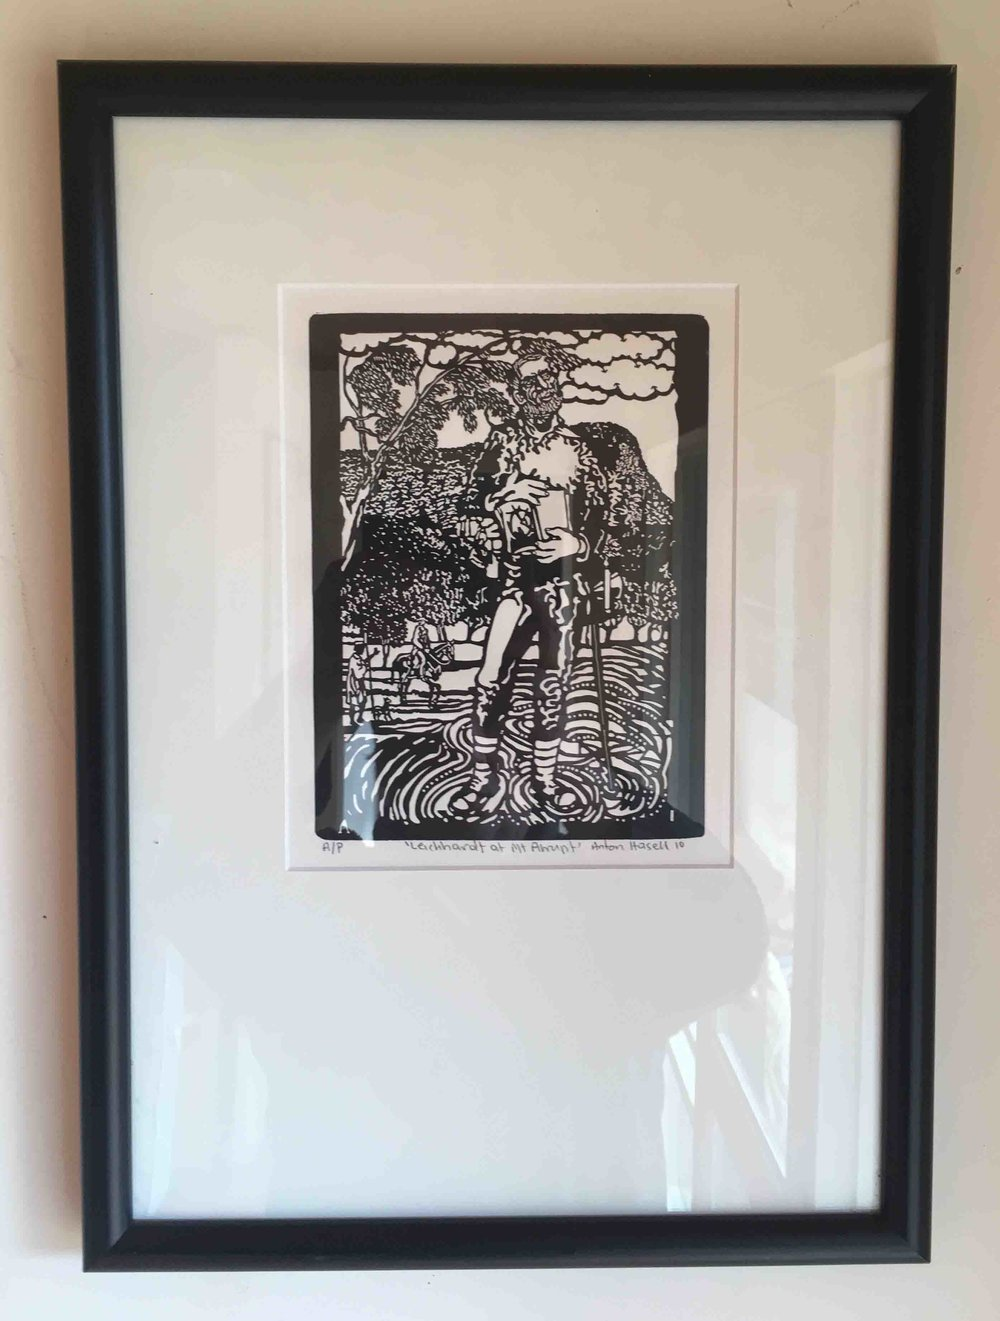 'Leichhardt at Mt Abrupt' 2010 0.25m by 0.15m, laser cut plate relief print